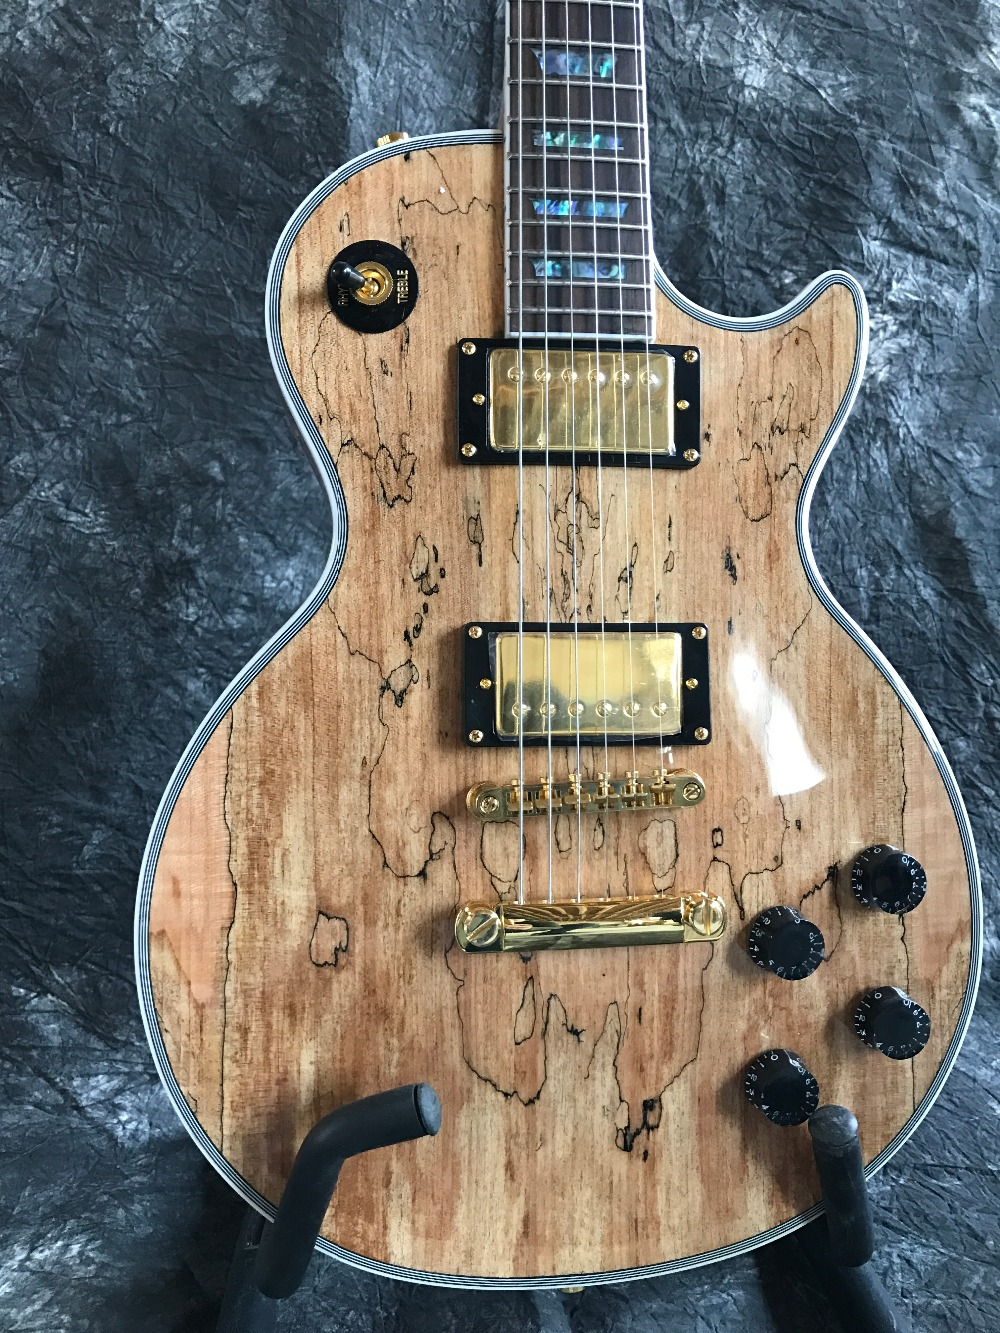 new brand starshine 1959 custom sr llp 062 mahogany electric guitar burl maple top good sound. Black Bedroom Furniture Sets. Home Design Ideas